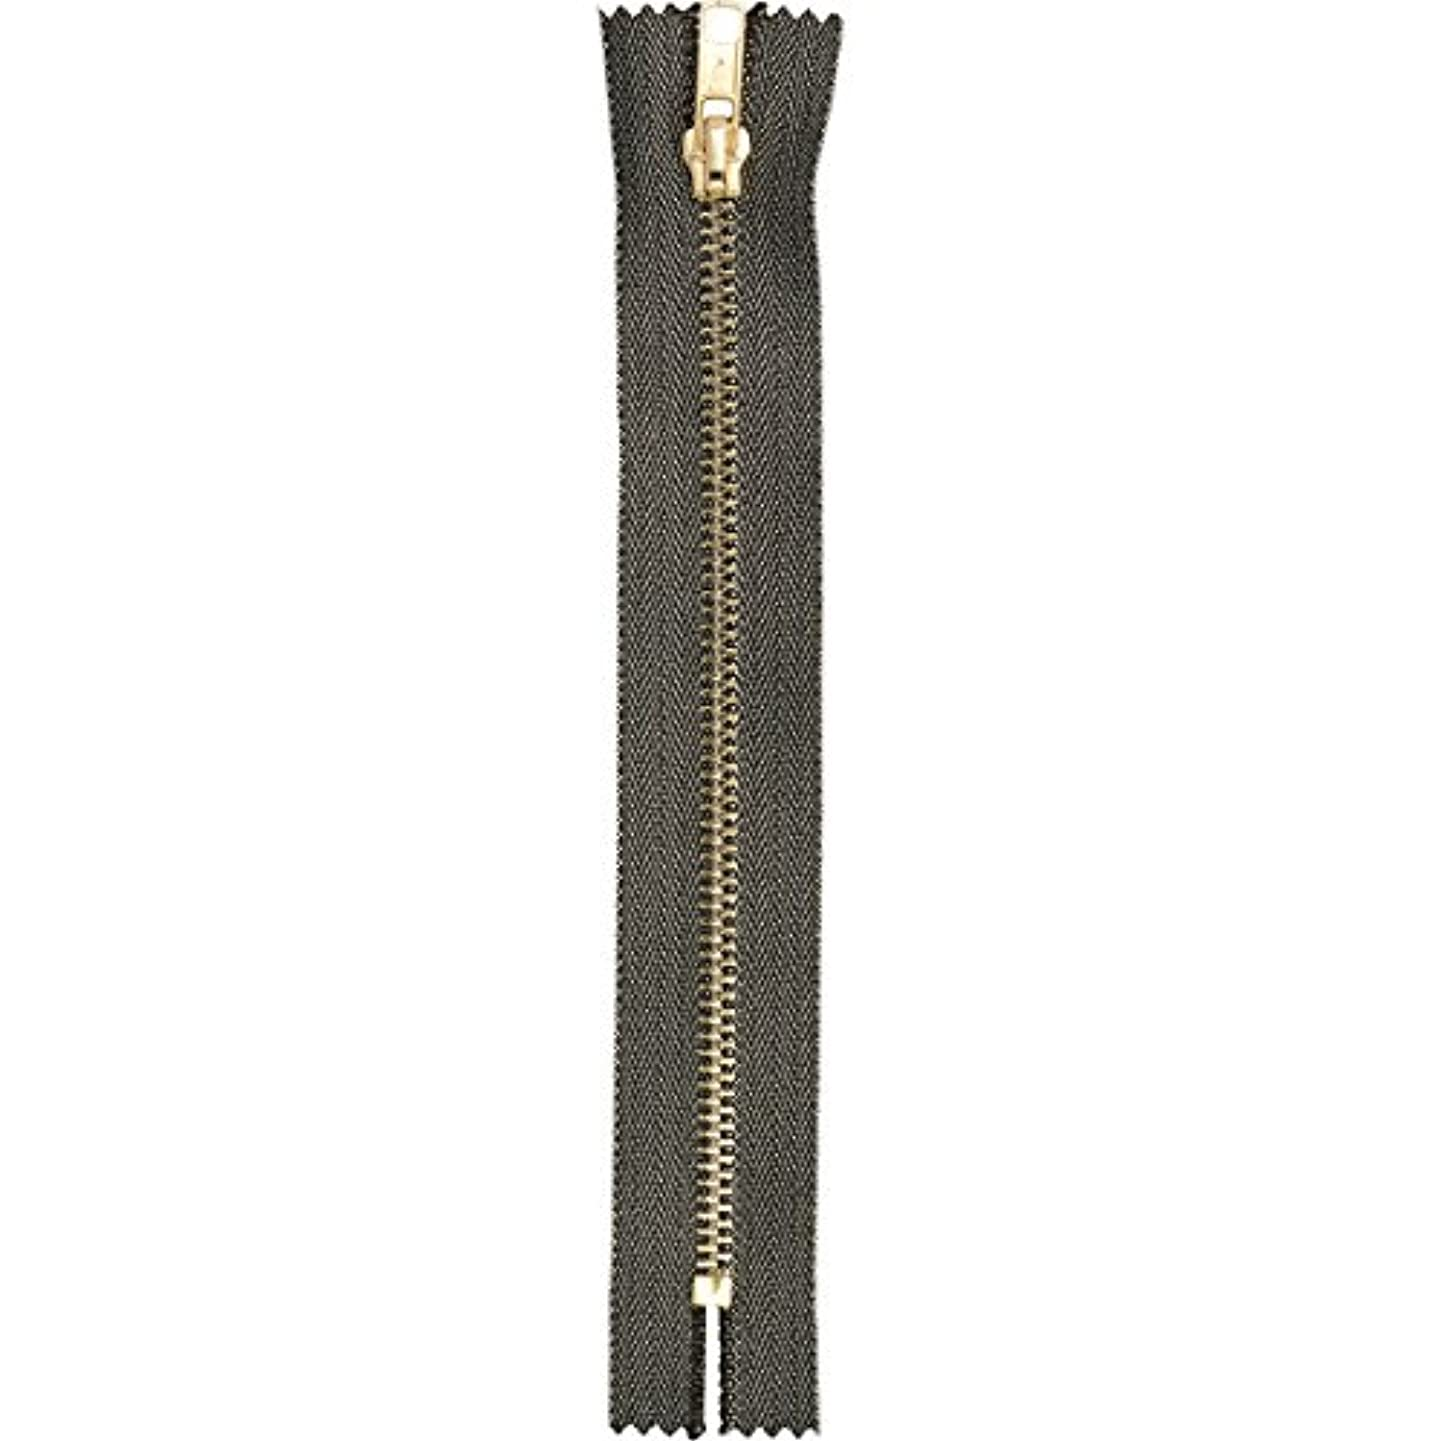 Products From Abroad Zipper Metallic 30cm Black,